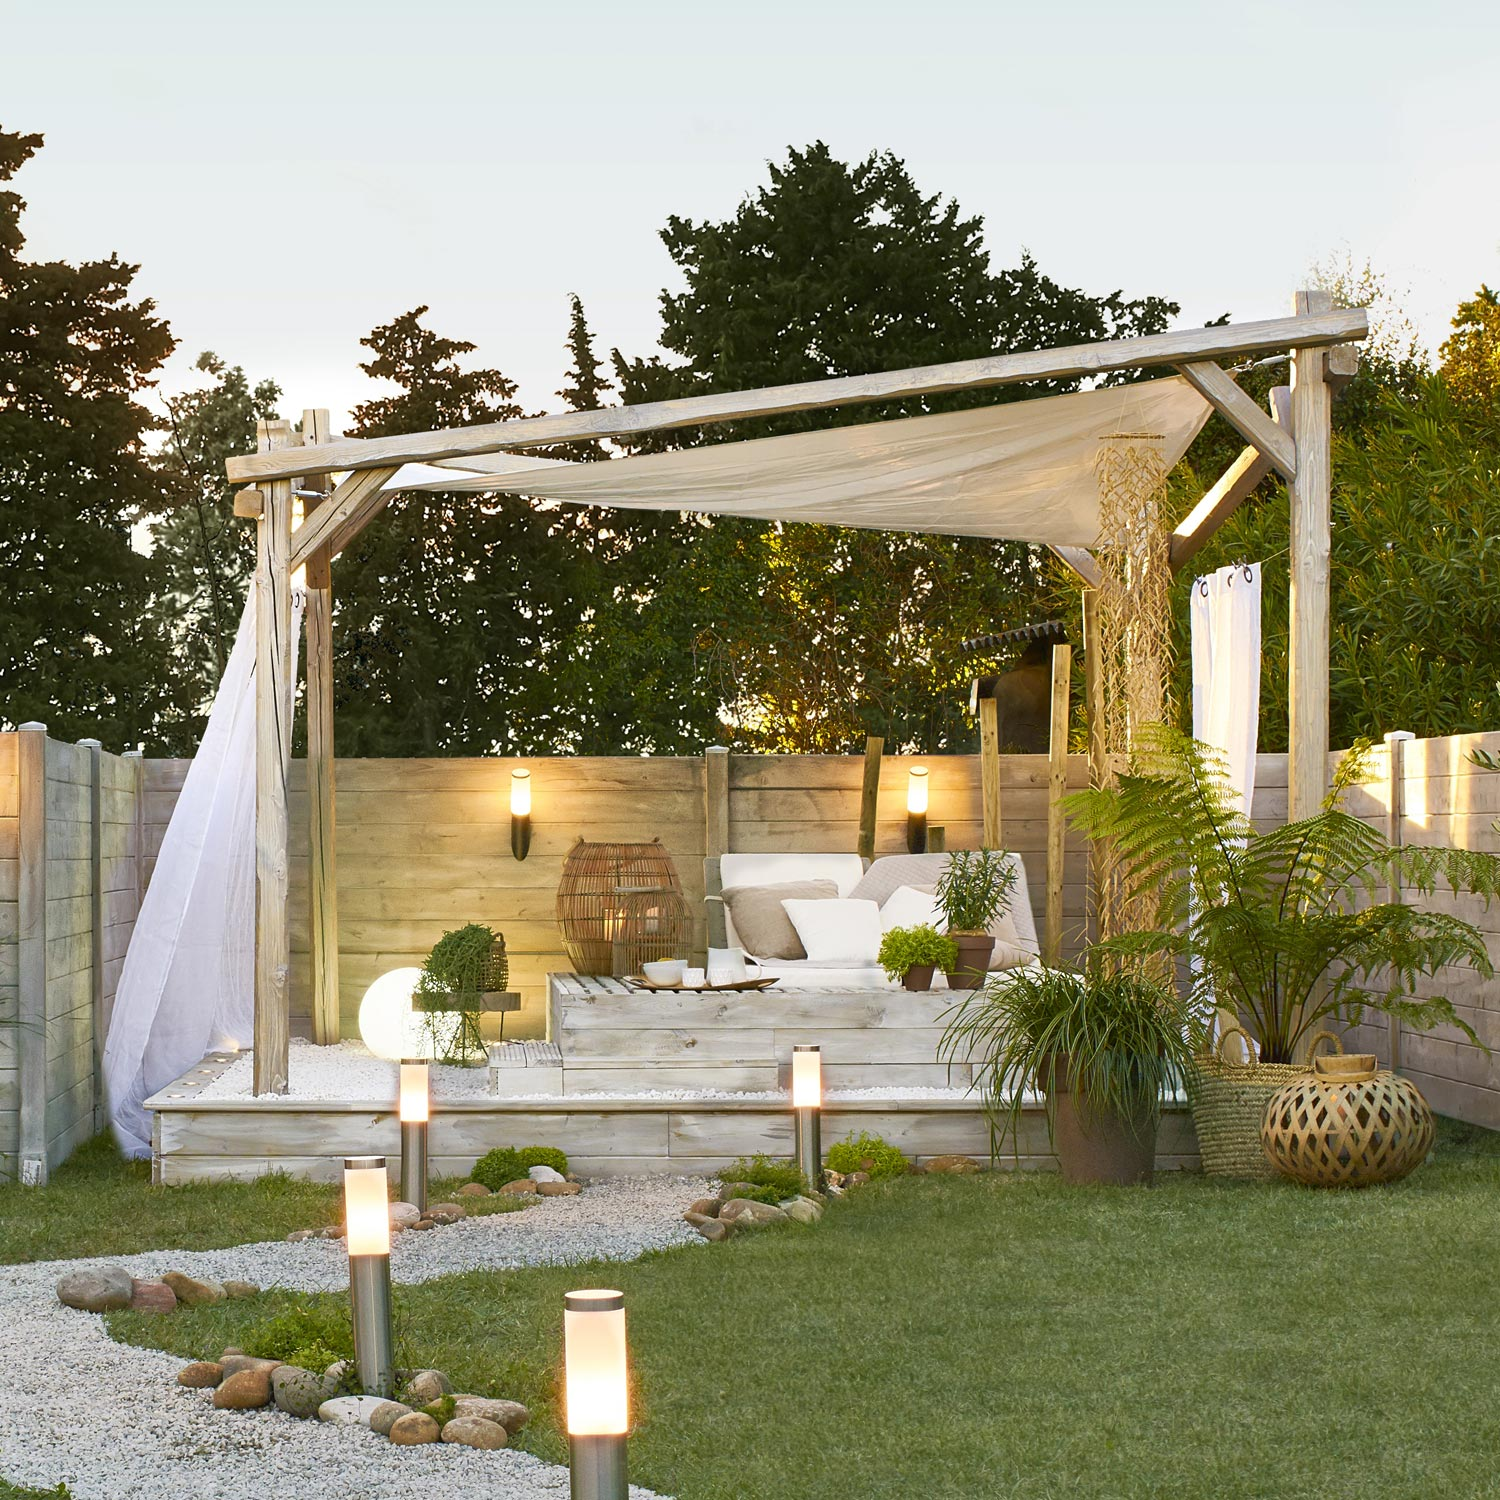 castorama pergola aluminium panneau jardin castorama tonnelle pas cher castorama with castorama. Black Bedroom Furniture Sets. Home Design Ideas